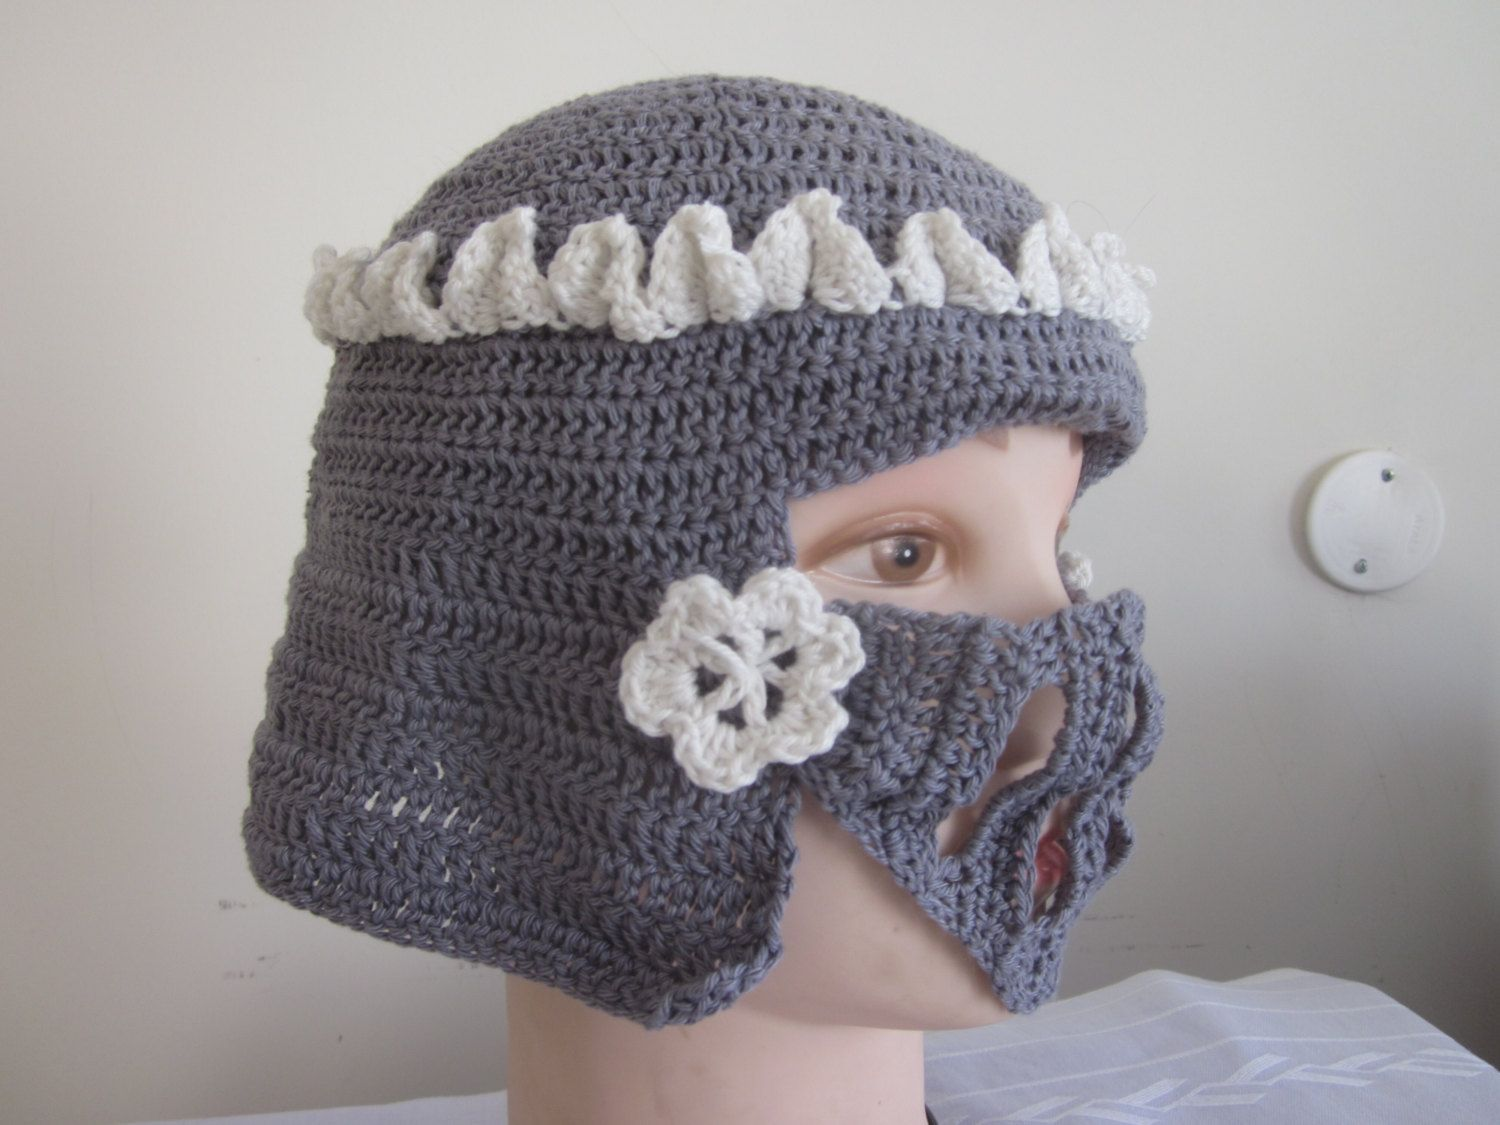 Knight helmet, crown and flowers decoration, a geeky hat shaped like ...